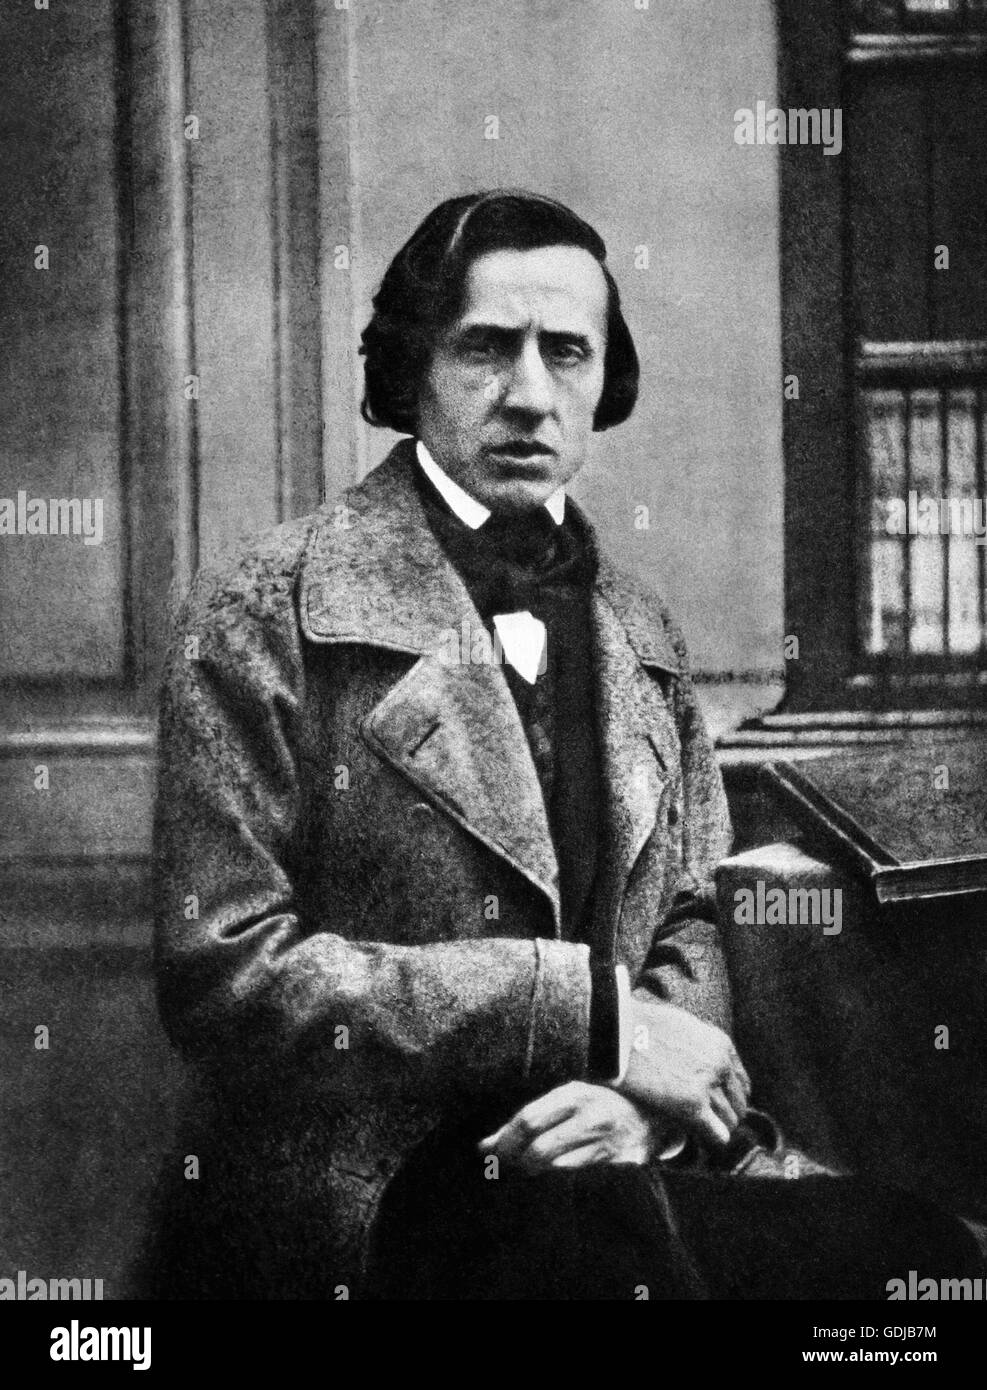 Chopin. Portrait of the Polish composer and pianist, Frédéric François Chopin (1810-1849), by Louis - Stock Image